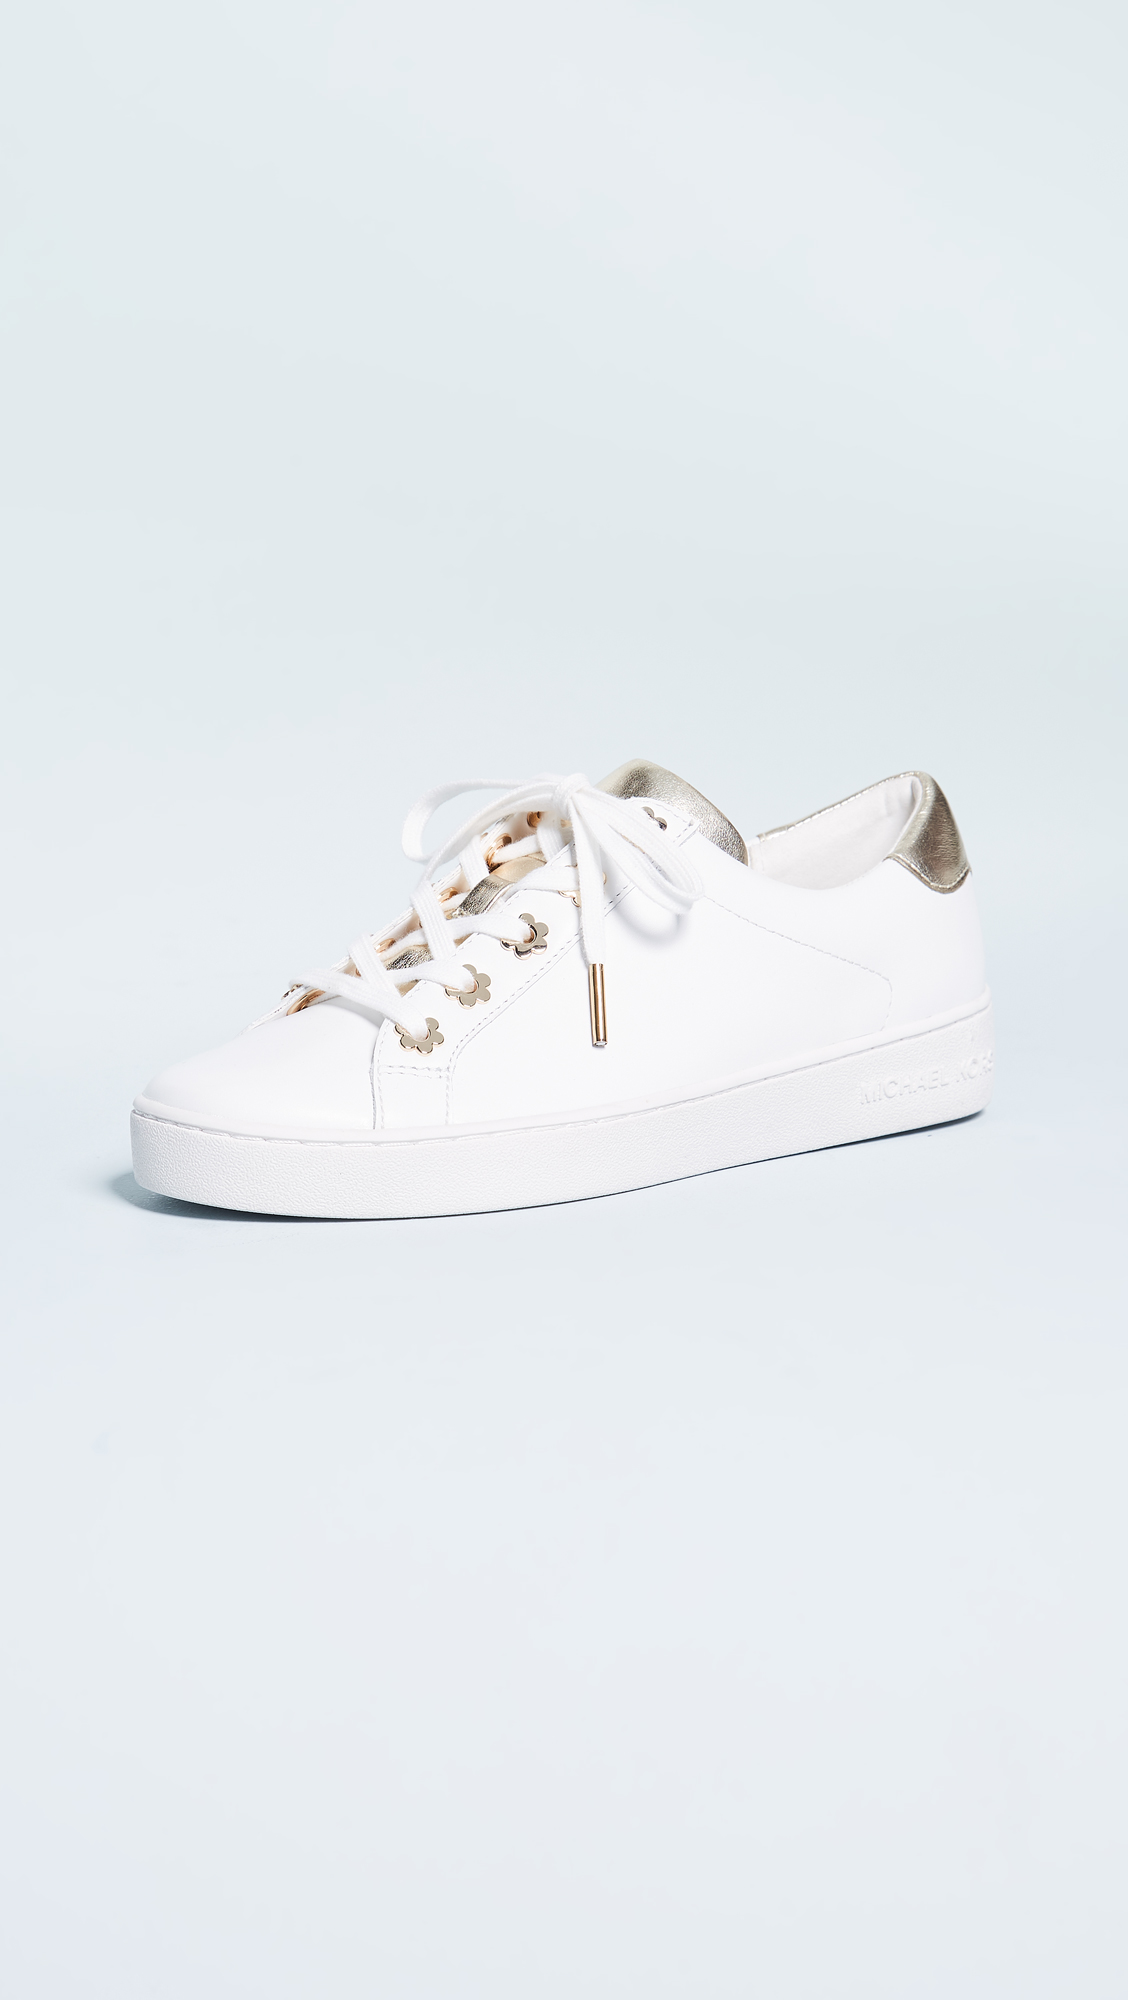 ad775530294 MICHAEL Michael Kors Irving Lace Up Sneakers